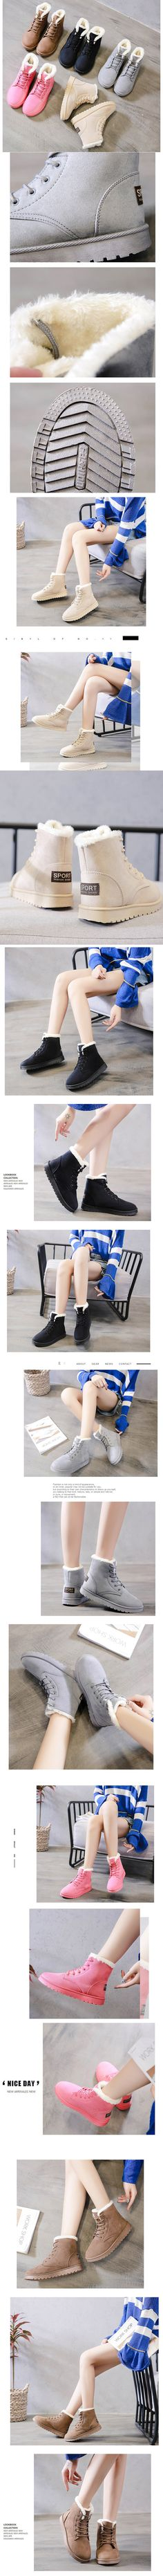 You Can Upload Pictures To Help More Friends C Men's Shoes Men's Casual Shoes Hearty Yatntnpy Pay Attention To Check If You Are Satisfied With The Shoes You Received